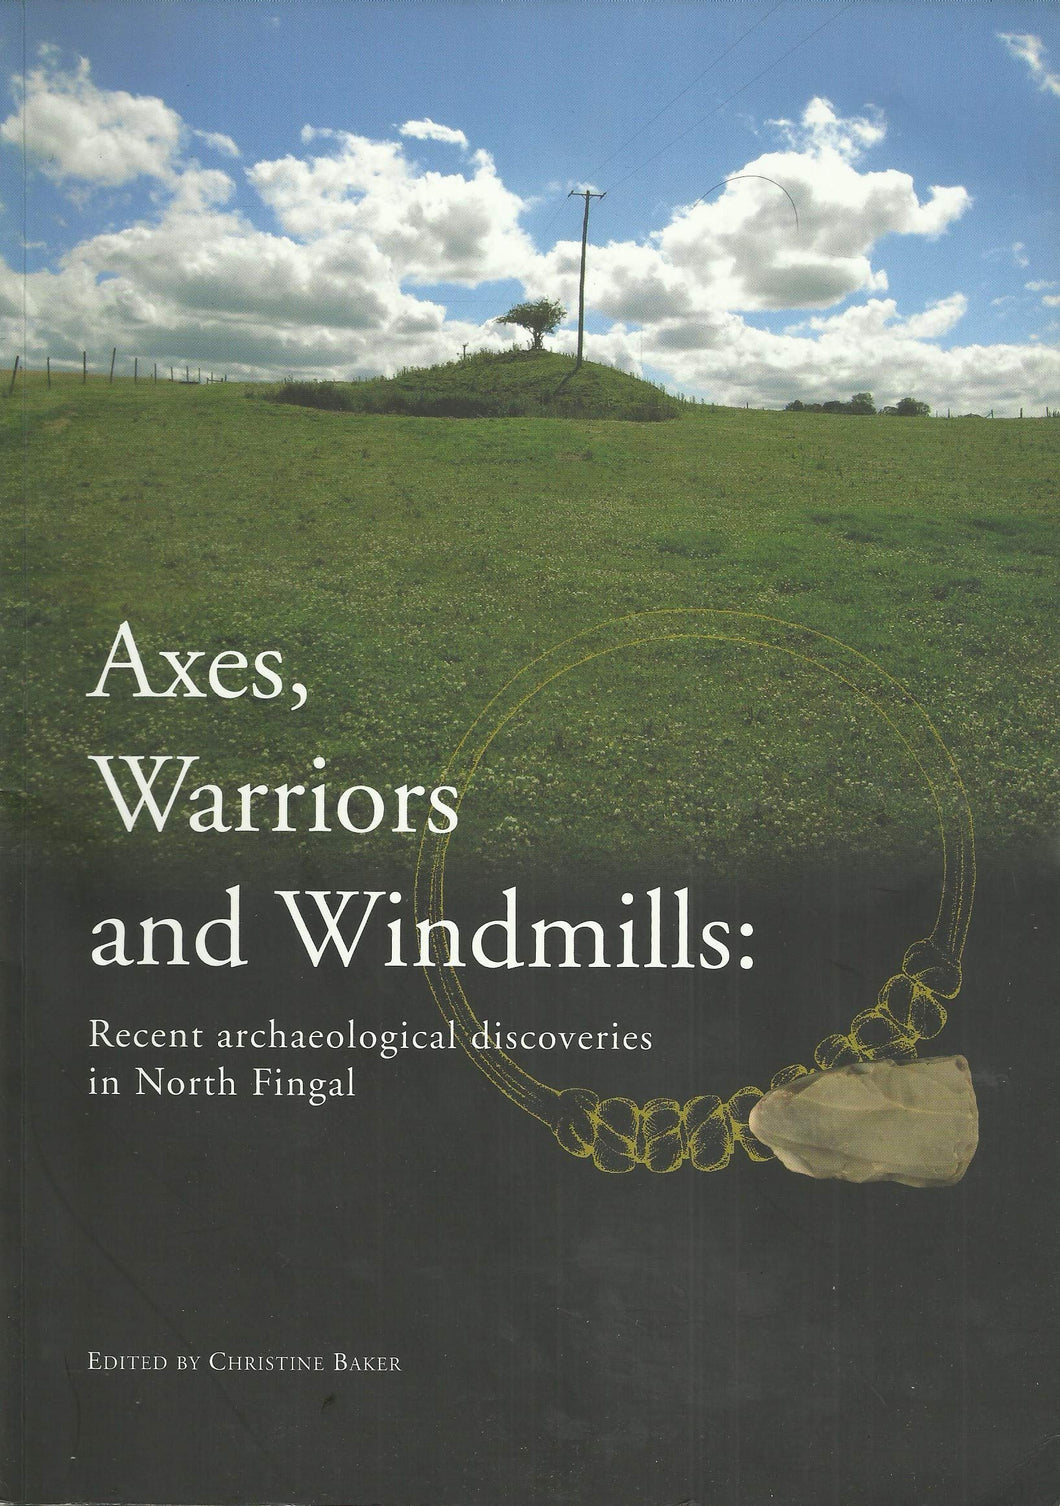 Axes, Warriors and Windmills: Recent Archaeological Discoveries in North Fingal